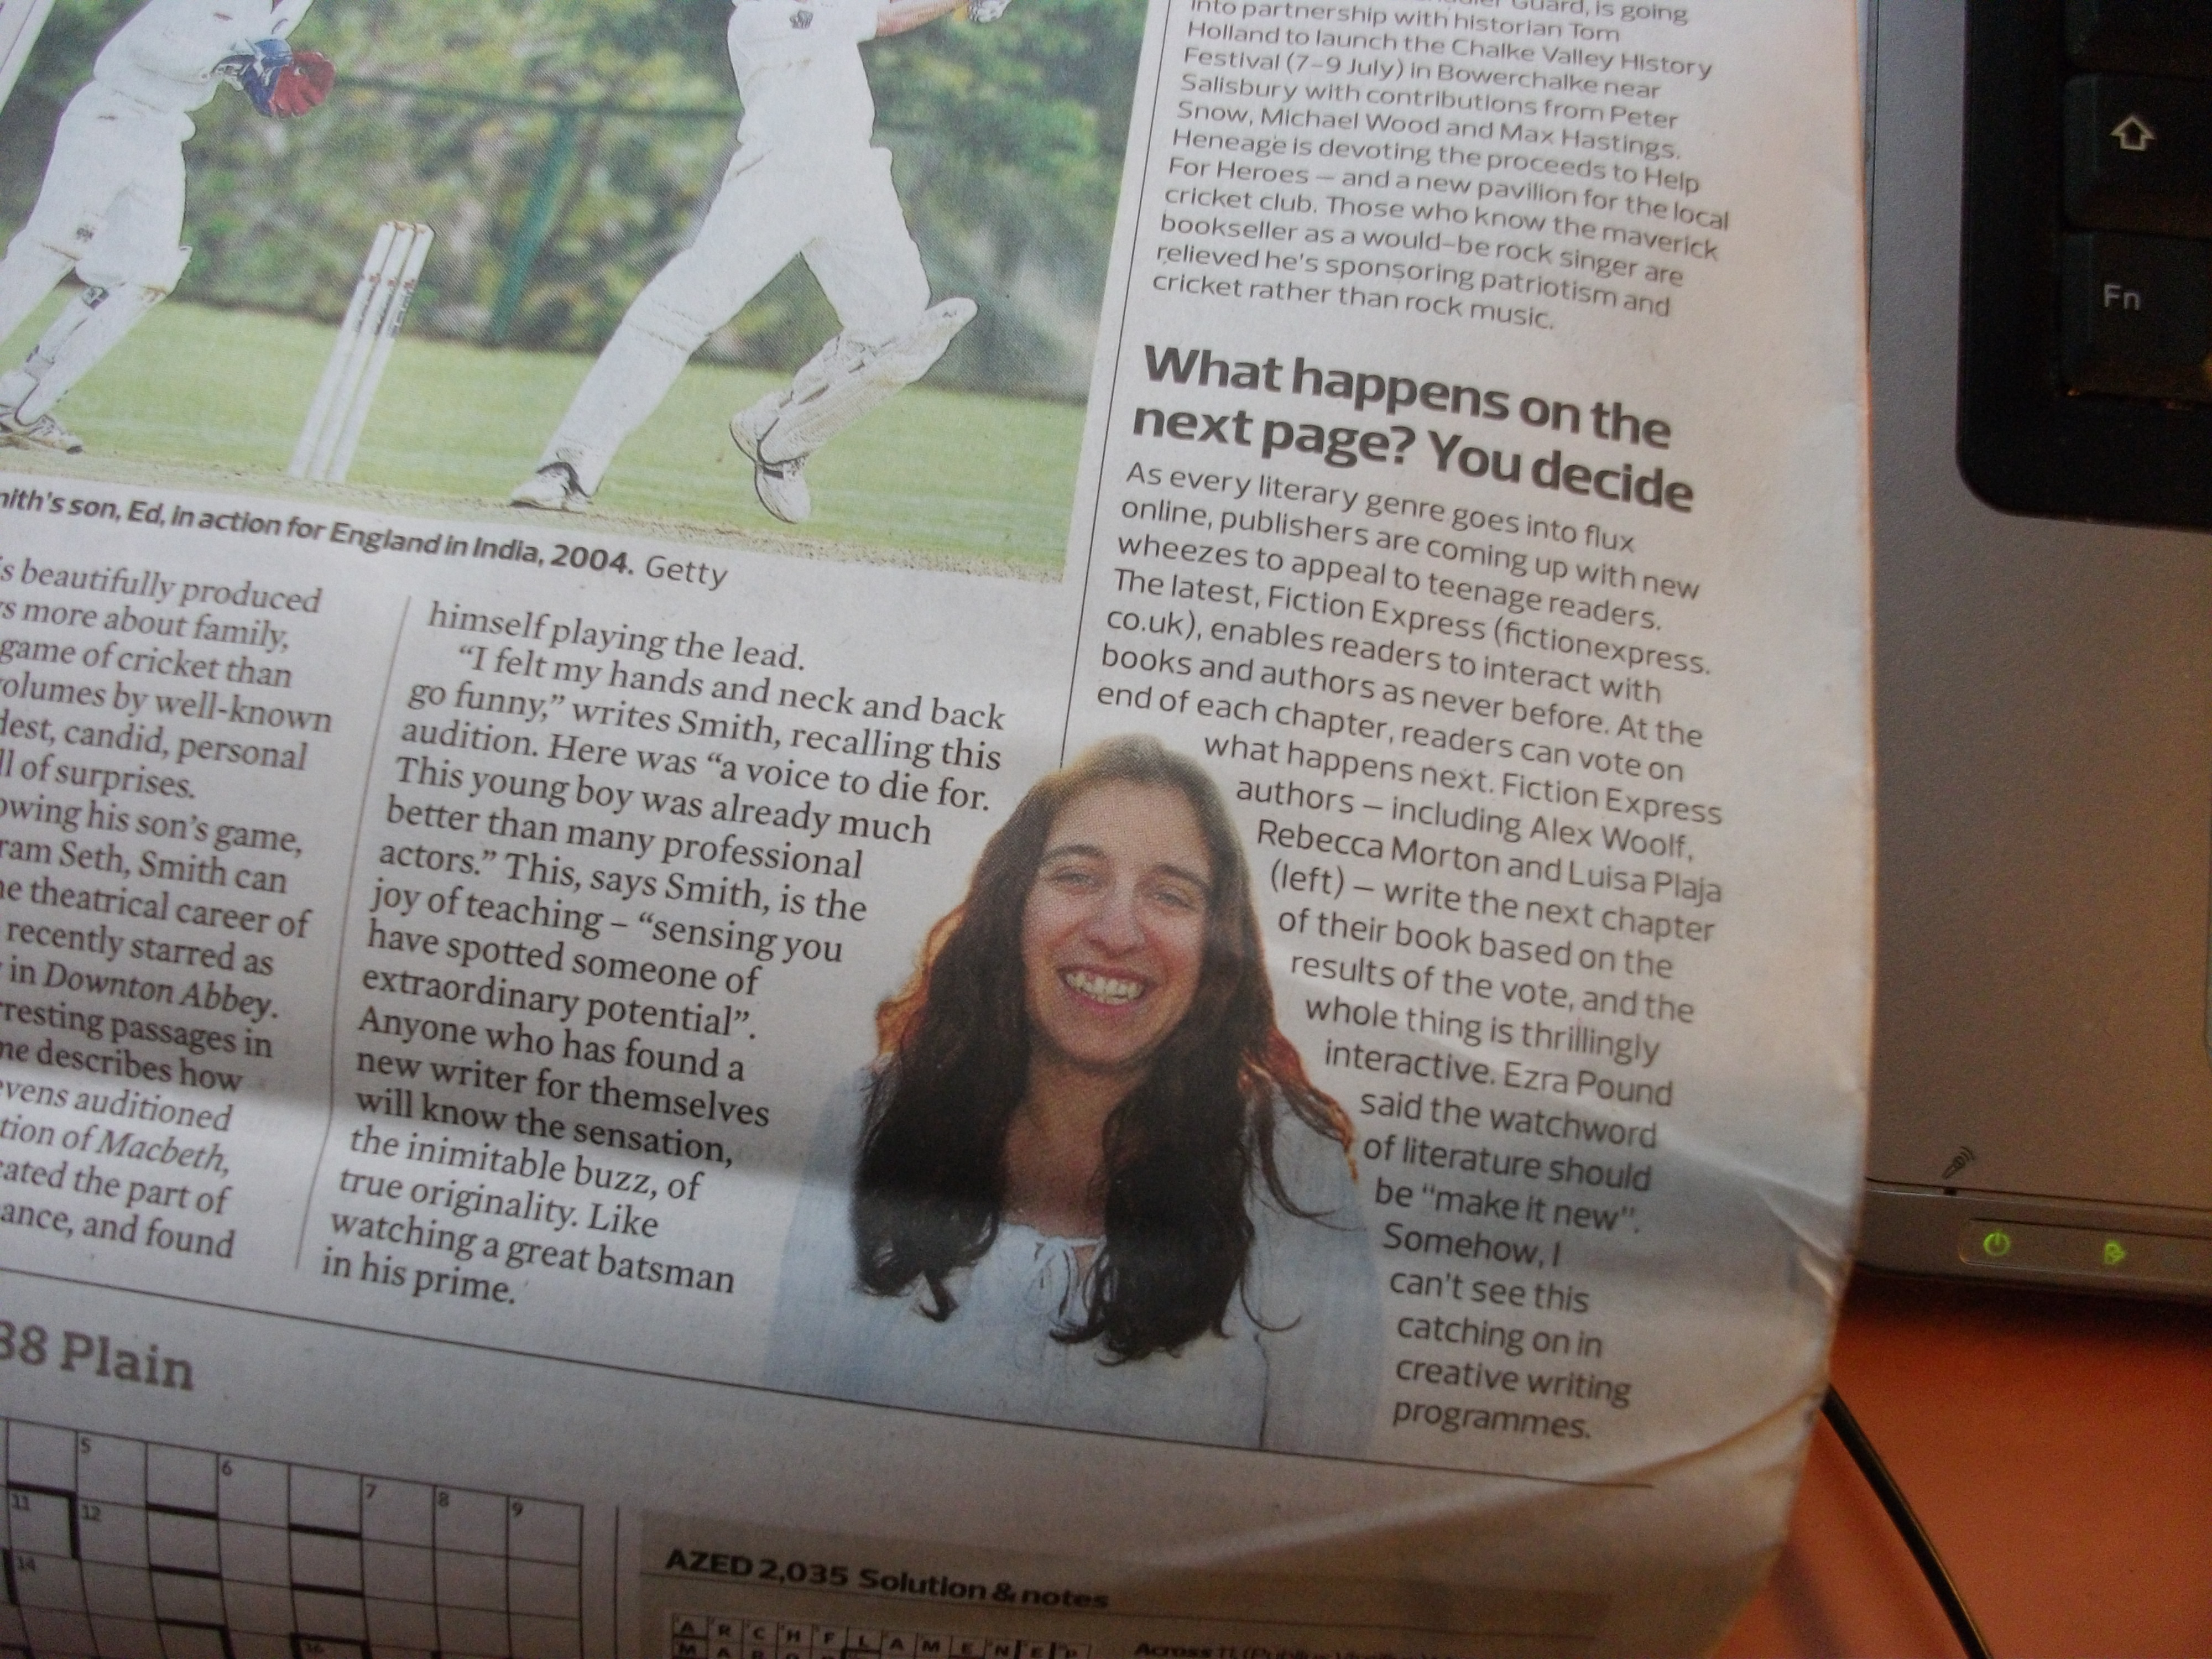 photo of Luisa Plaja in The Observer 19 June 2011